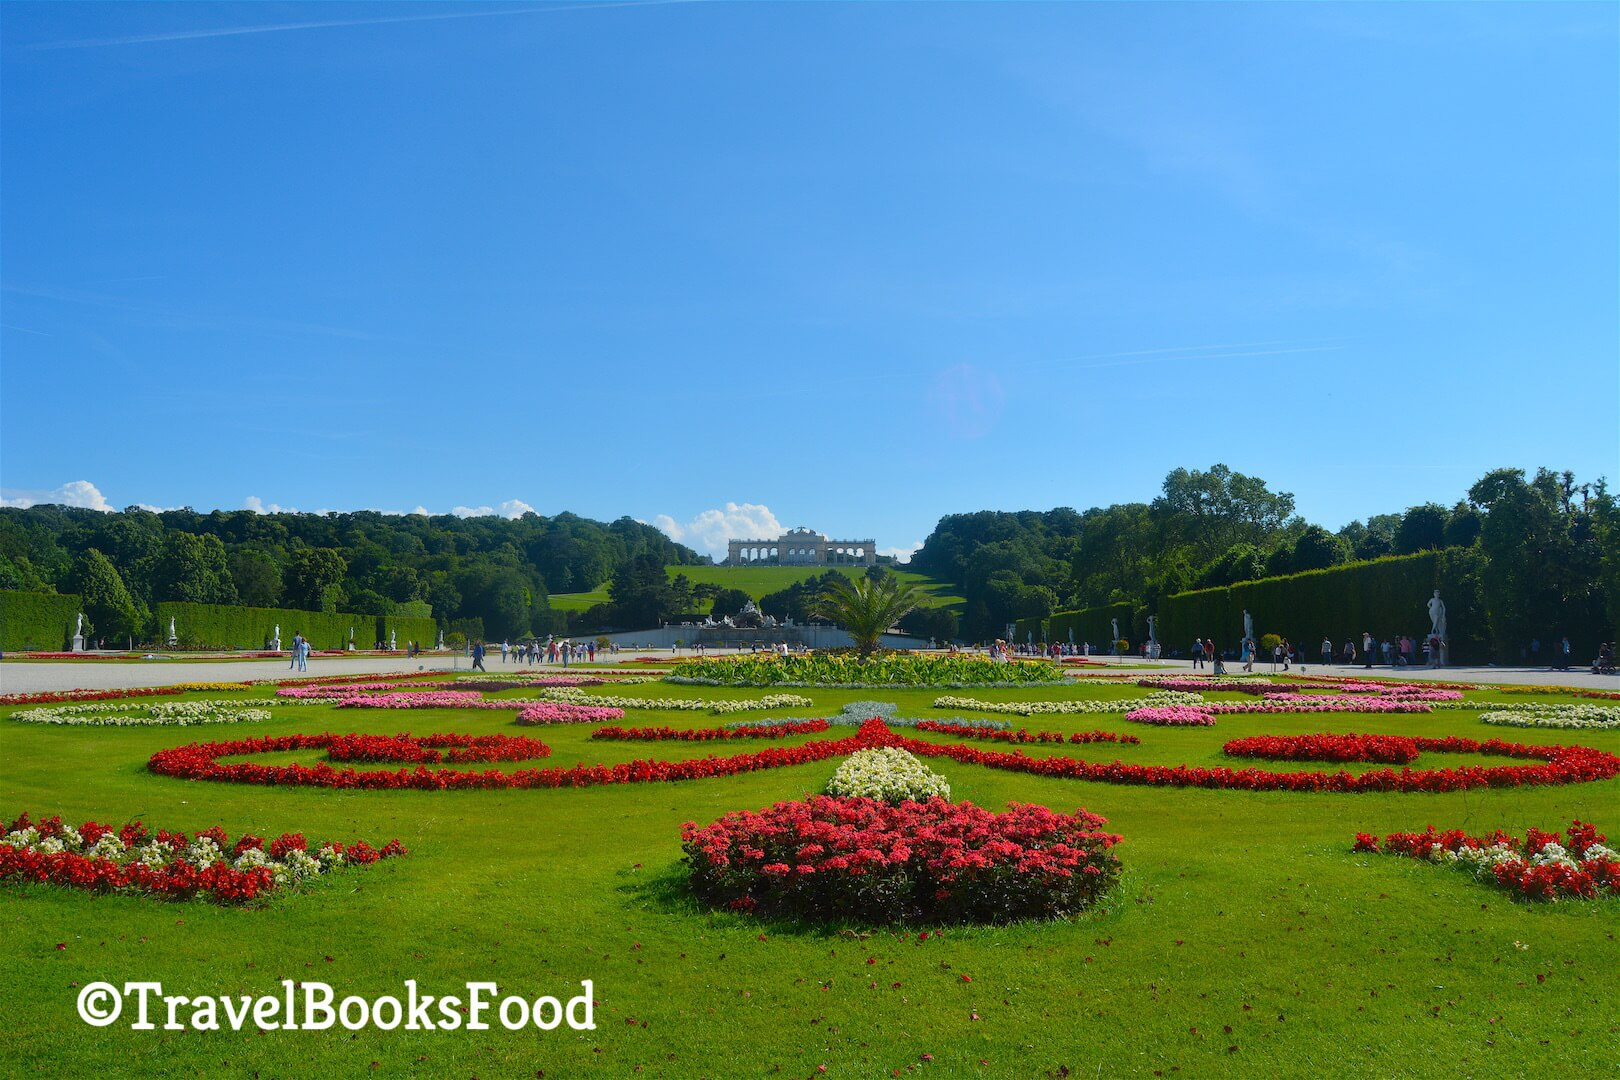 A view of the Gardens in Schonbrunn palace in Vienna with the Gloriette in the distance